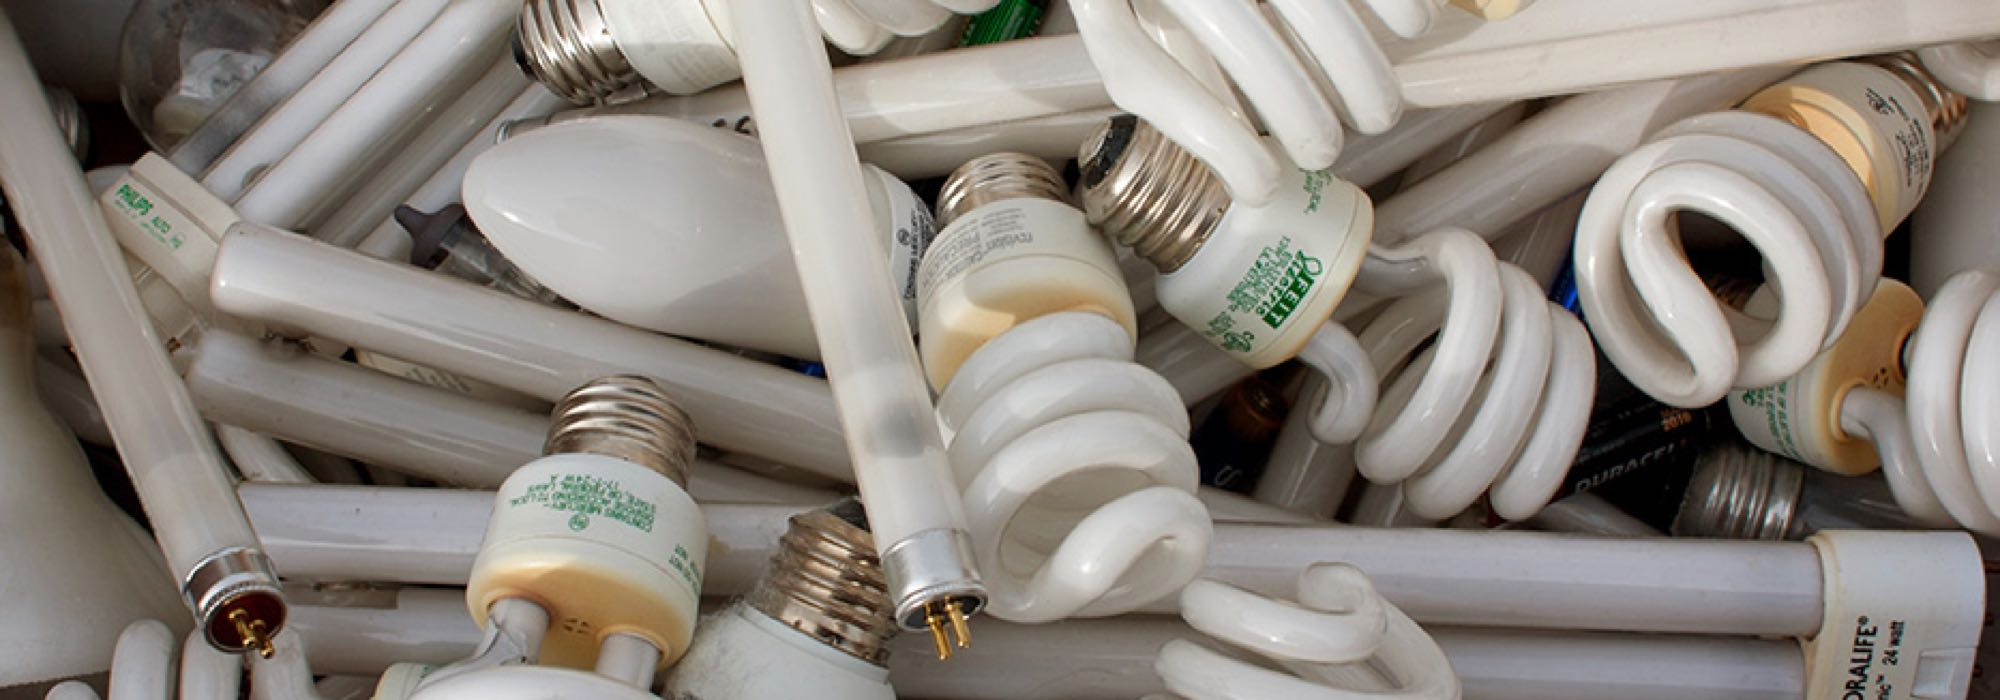 Light Recycling Product Care Wiring A Lamp With Two Bulbs The Importance Of Your